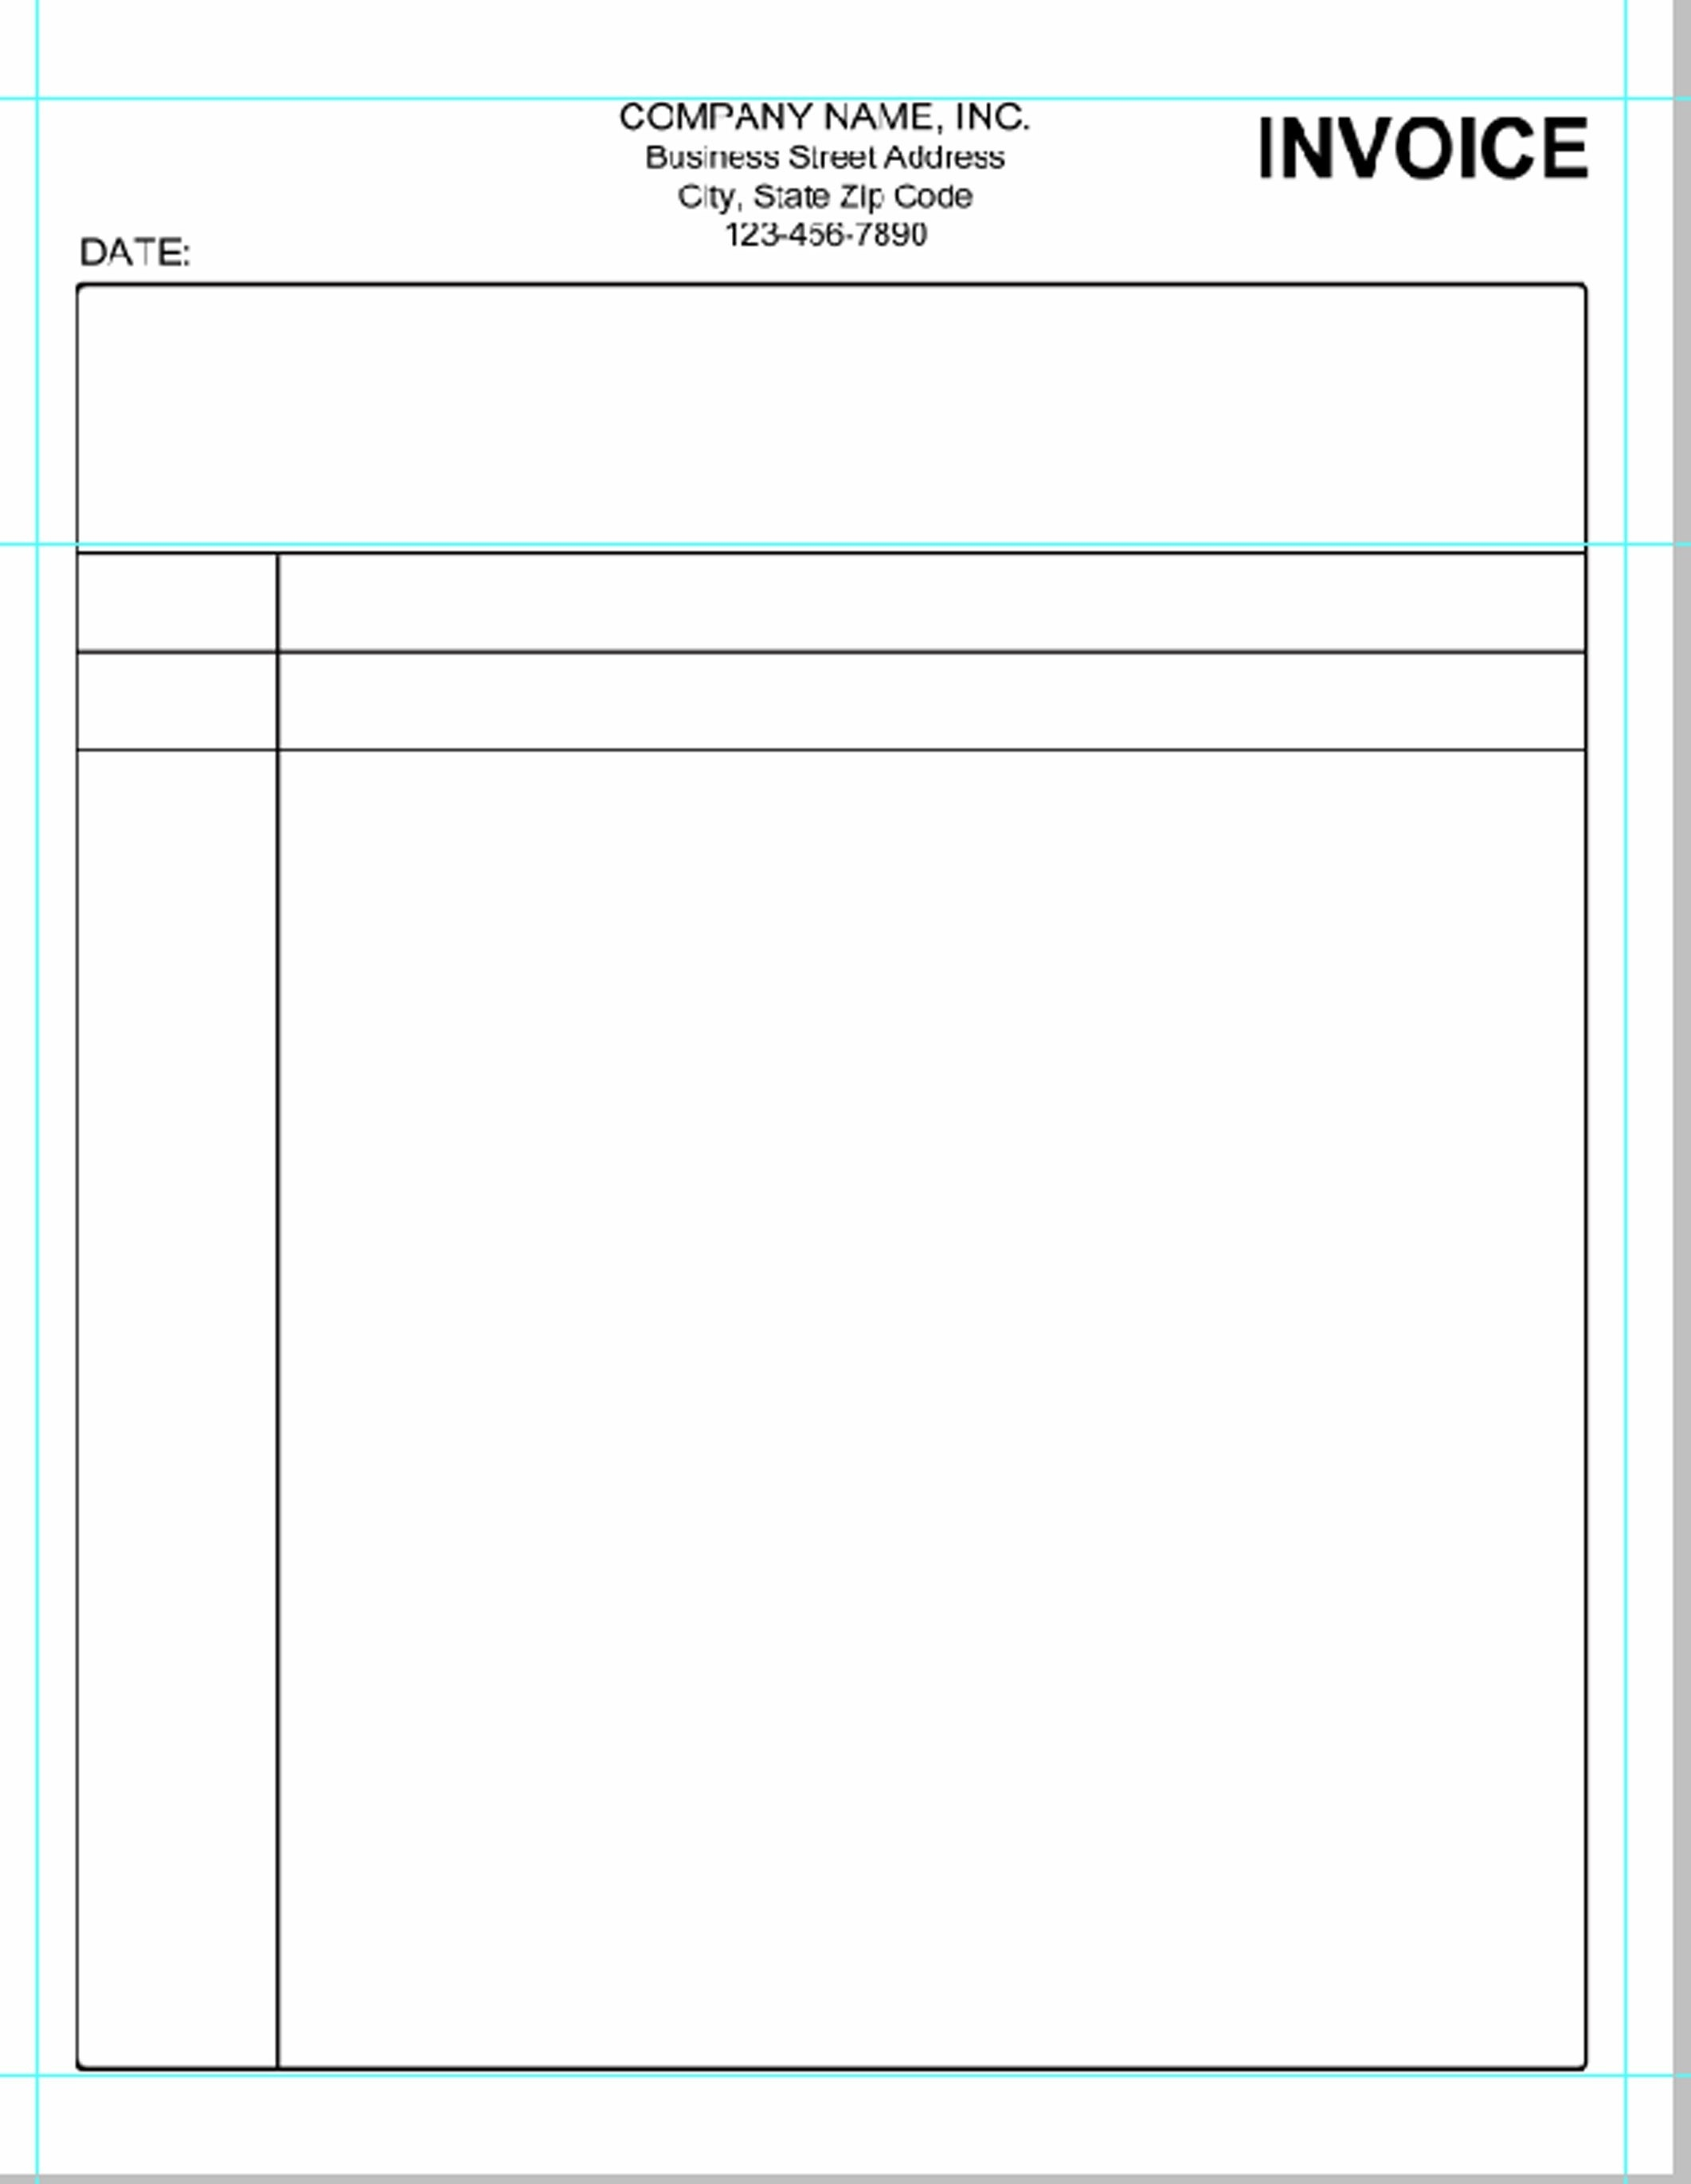 Free Printable Blank Invoice Sheet Templates Word Template Sample Uk - Free Printable Blank Invoice Sheet